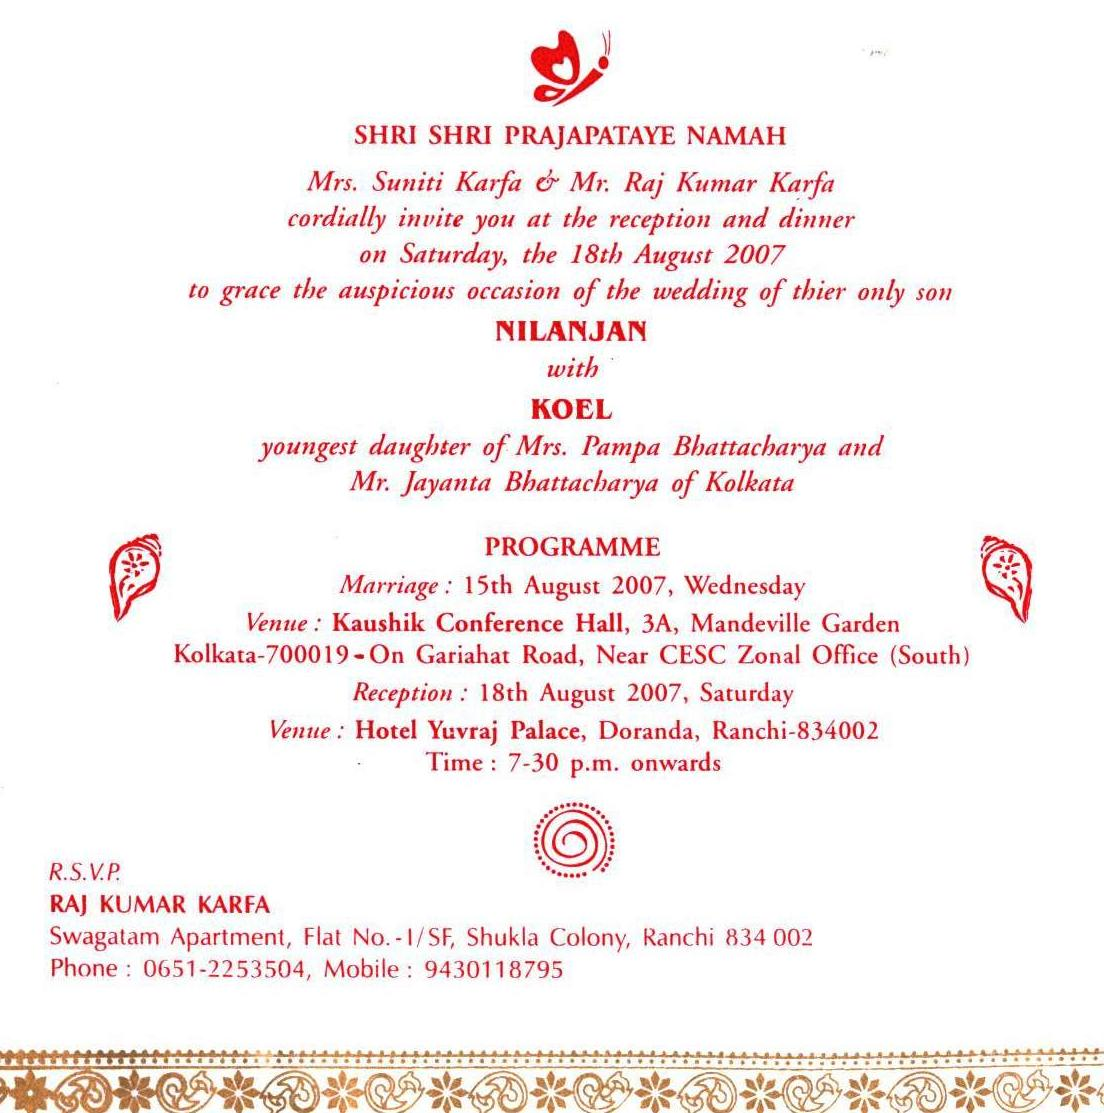 Marriage invitation card format in english download for Wedding invitation quotes in english for sister marriage